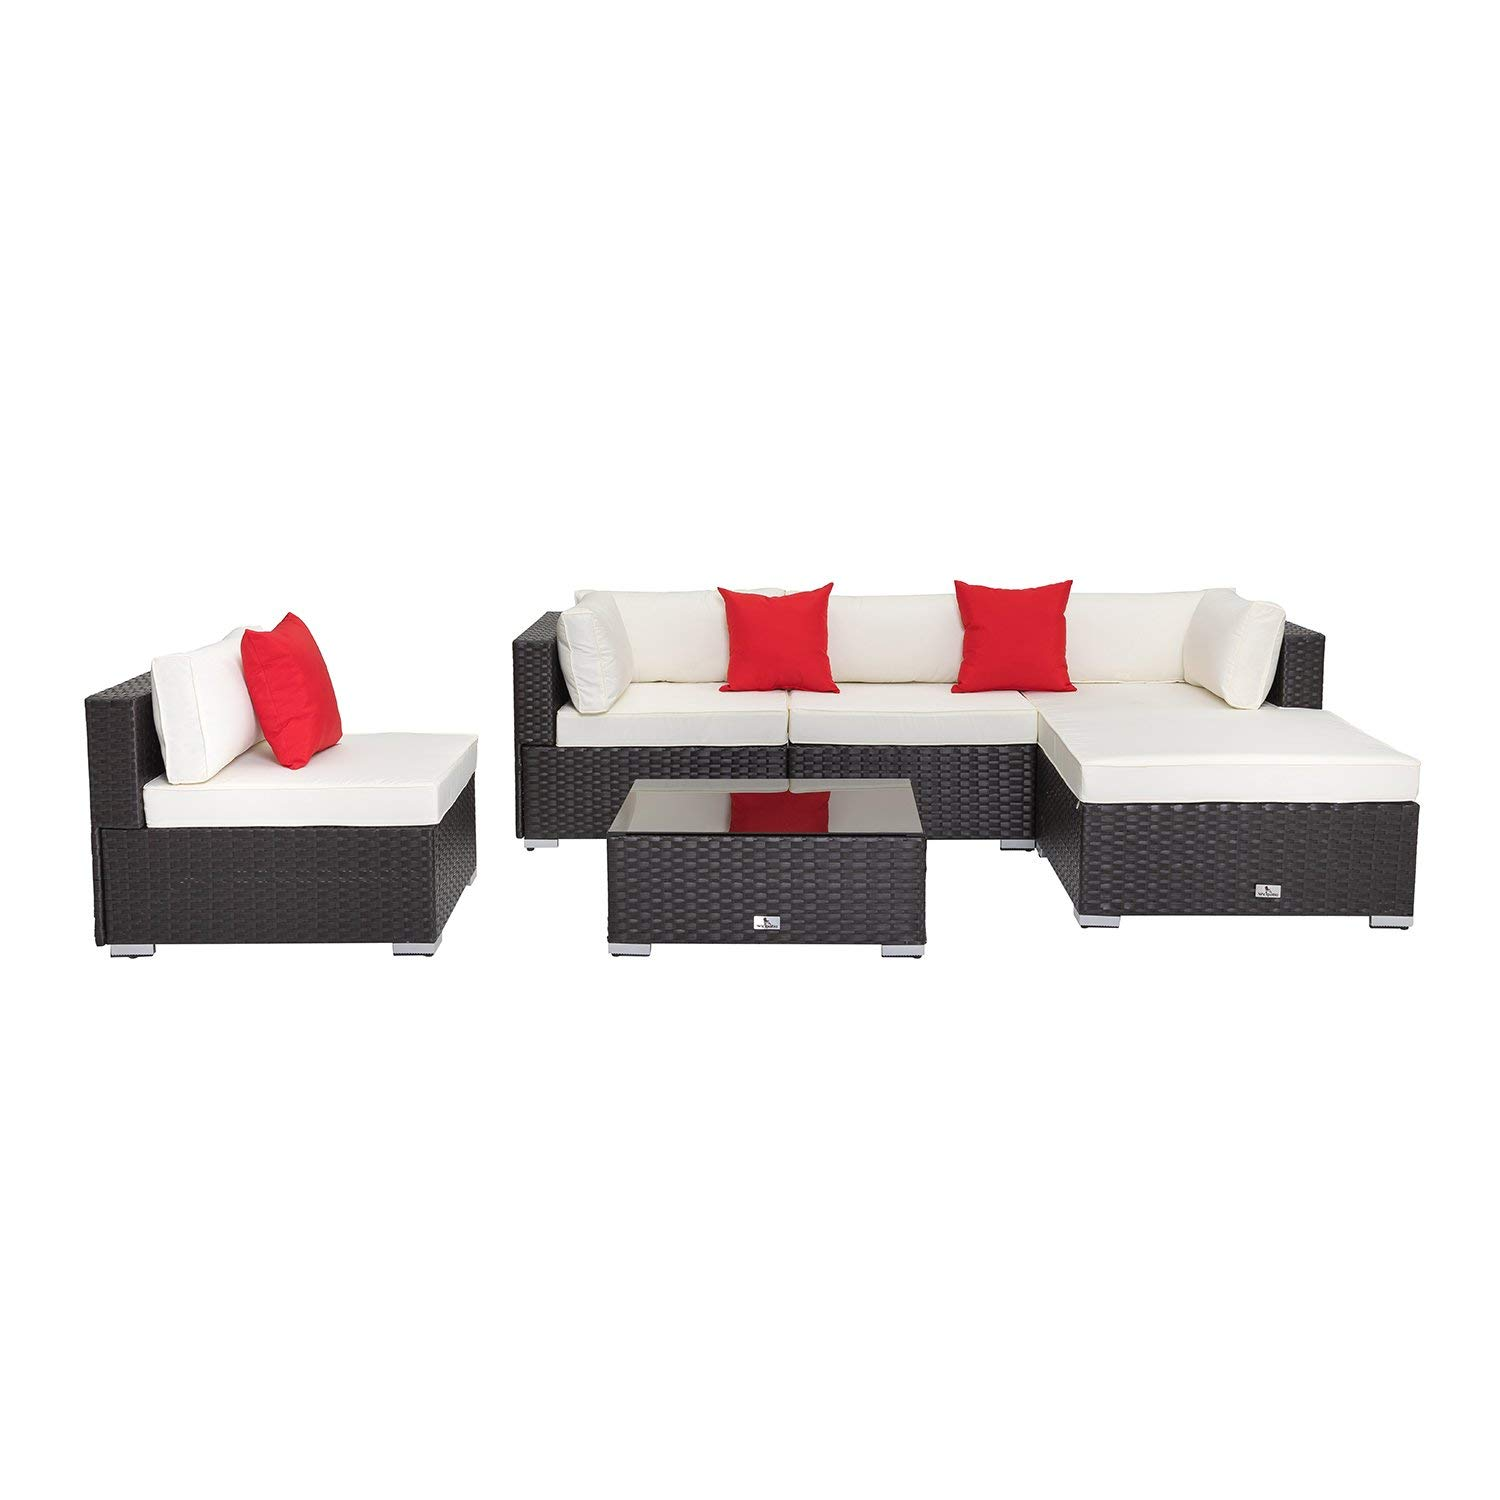 Cheap Sofa Cushions Sale Find Sofa Cushions Sale Deals On Line At